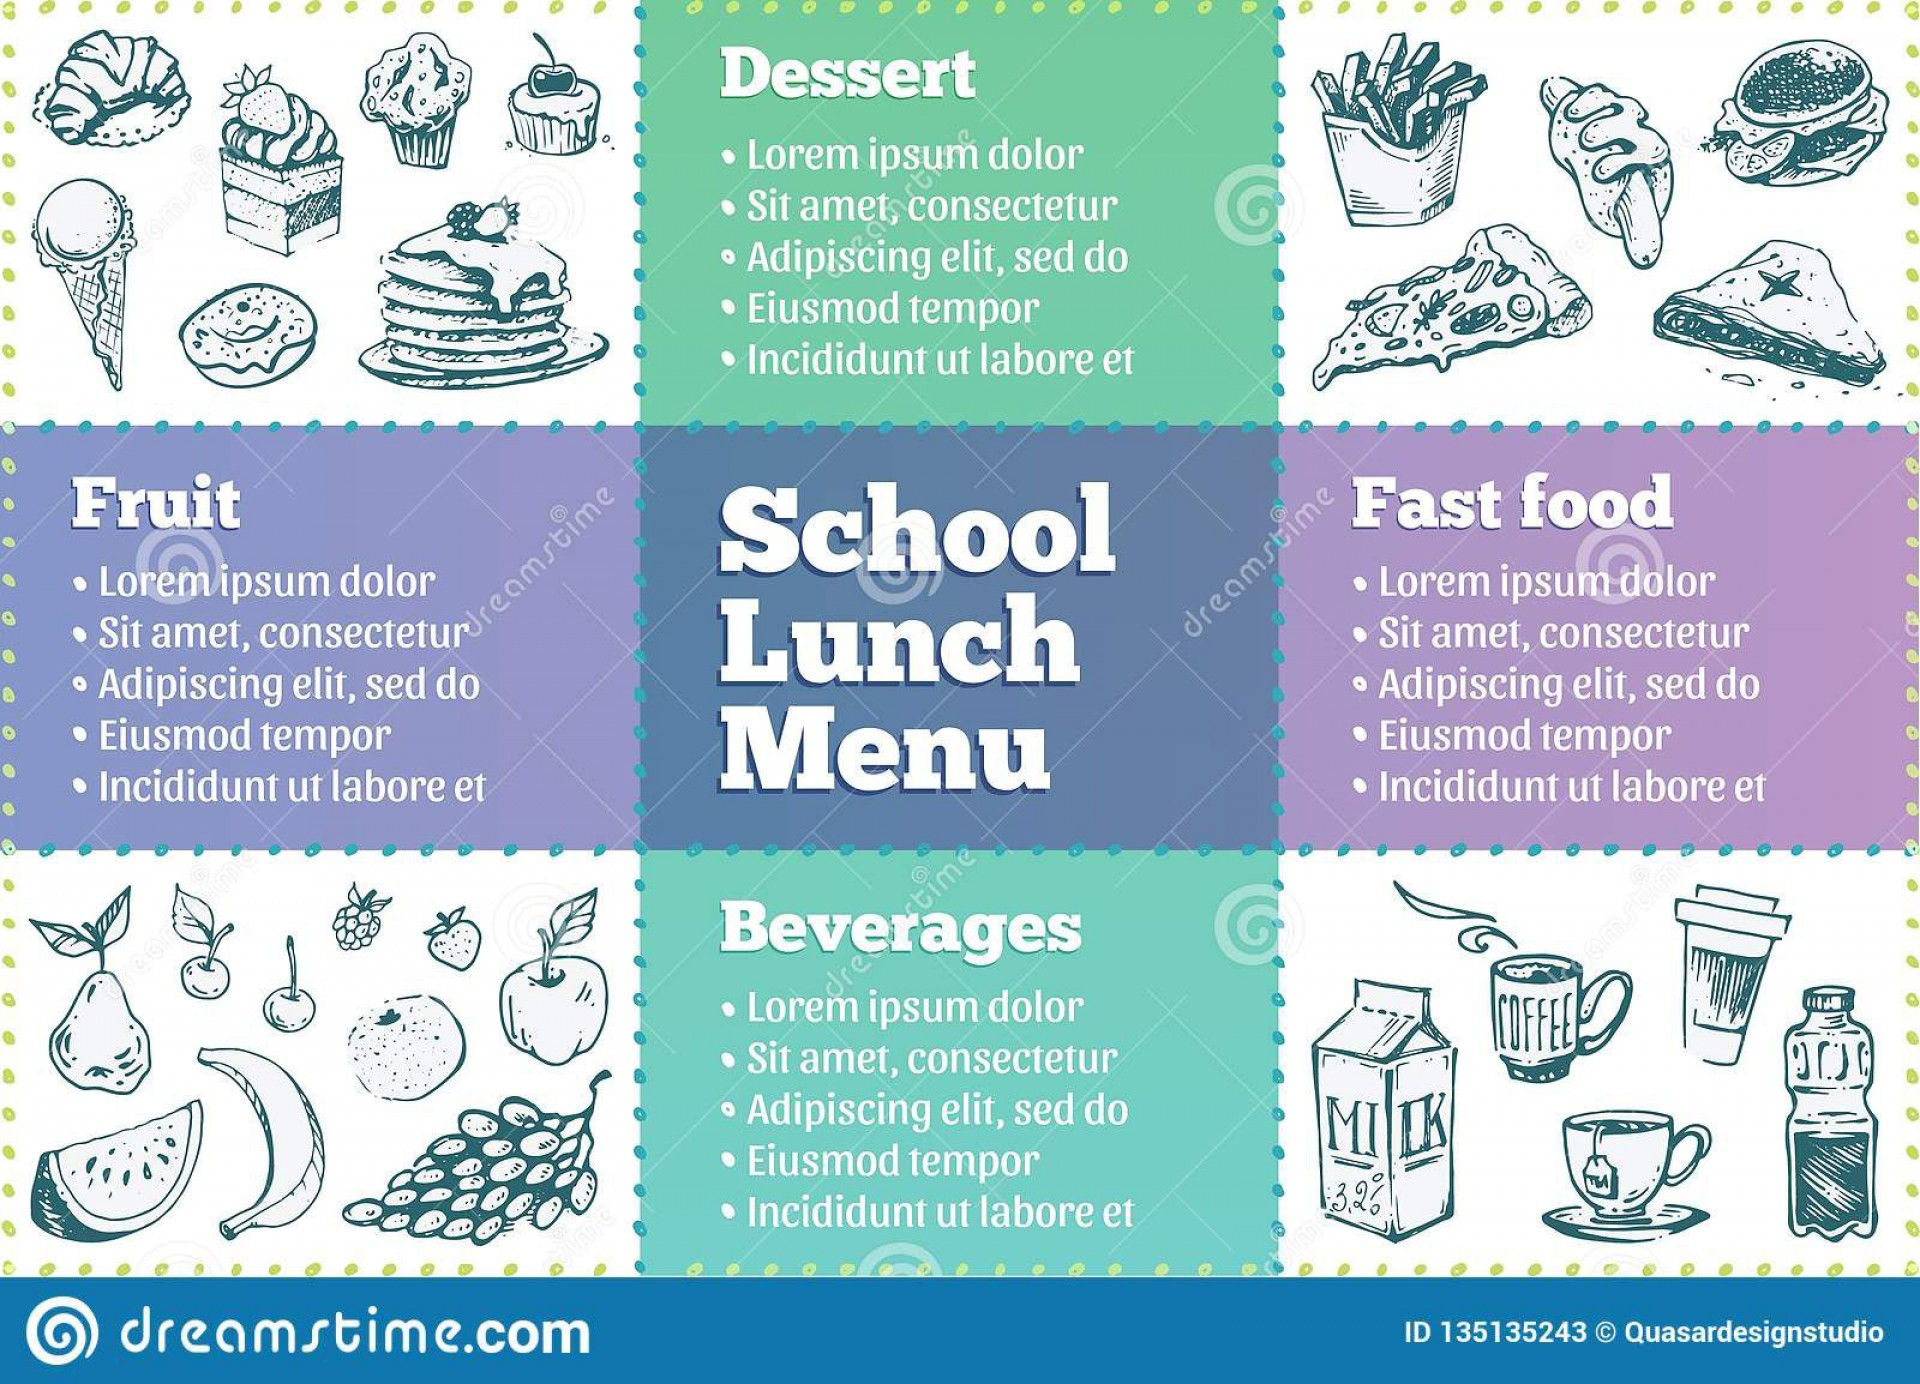 007 Impressive School Lunch Menu Template High Resolution  Monthly Free Printable Blank1920